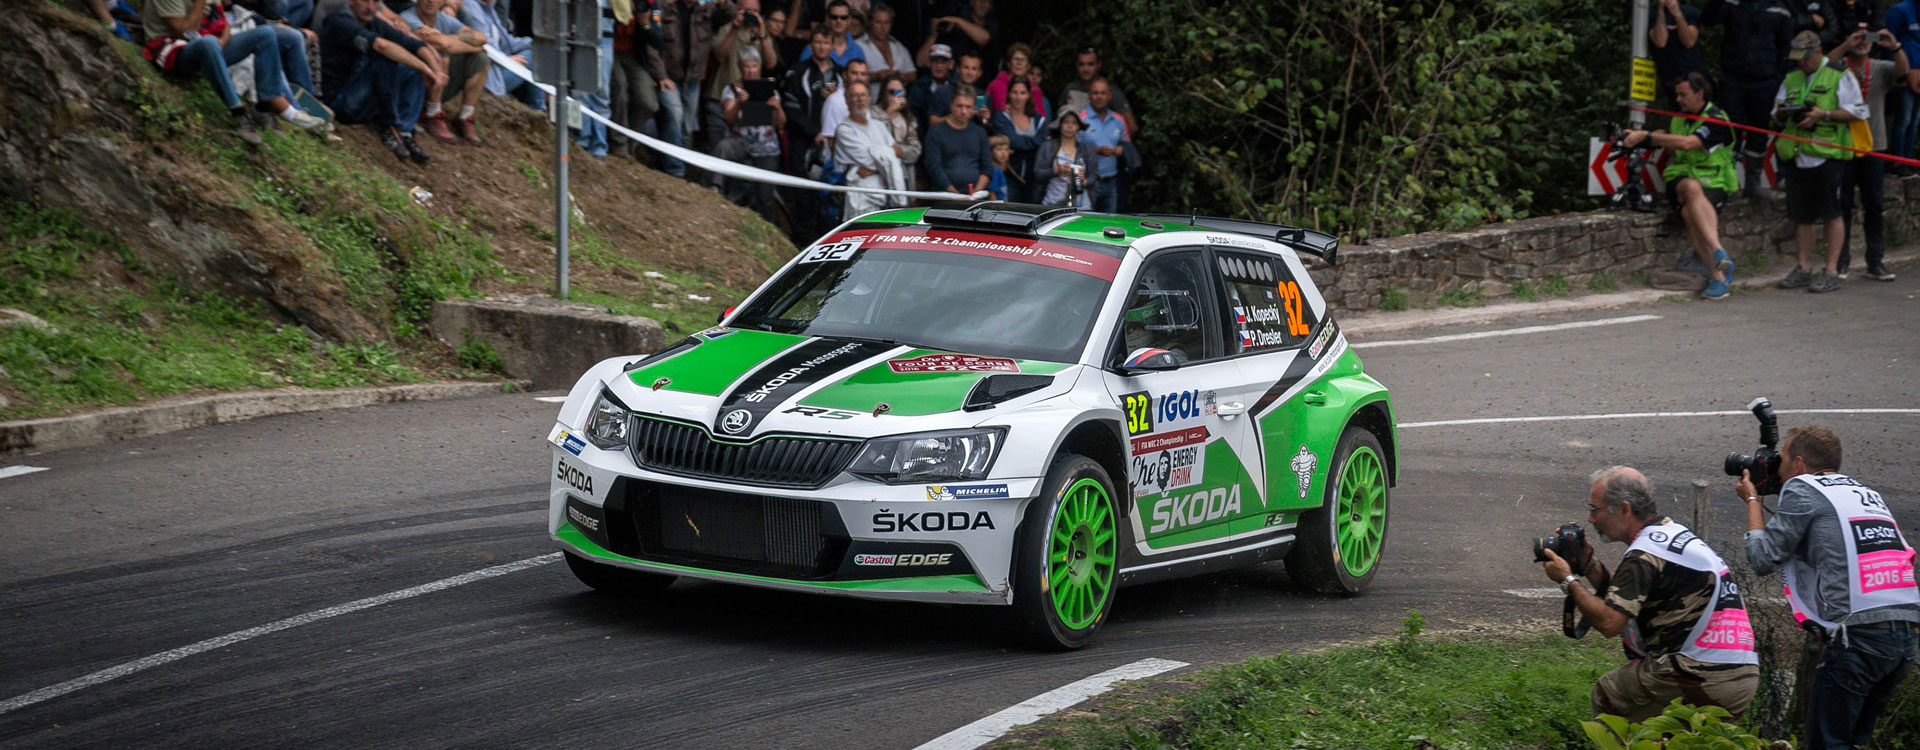 VIDEO: ŠKODA Motorsport at the Tour de Corse 2016